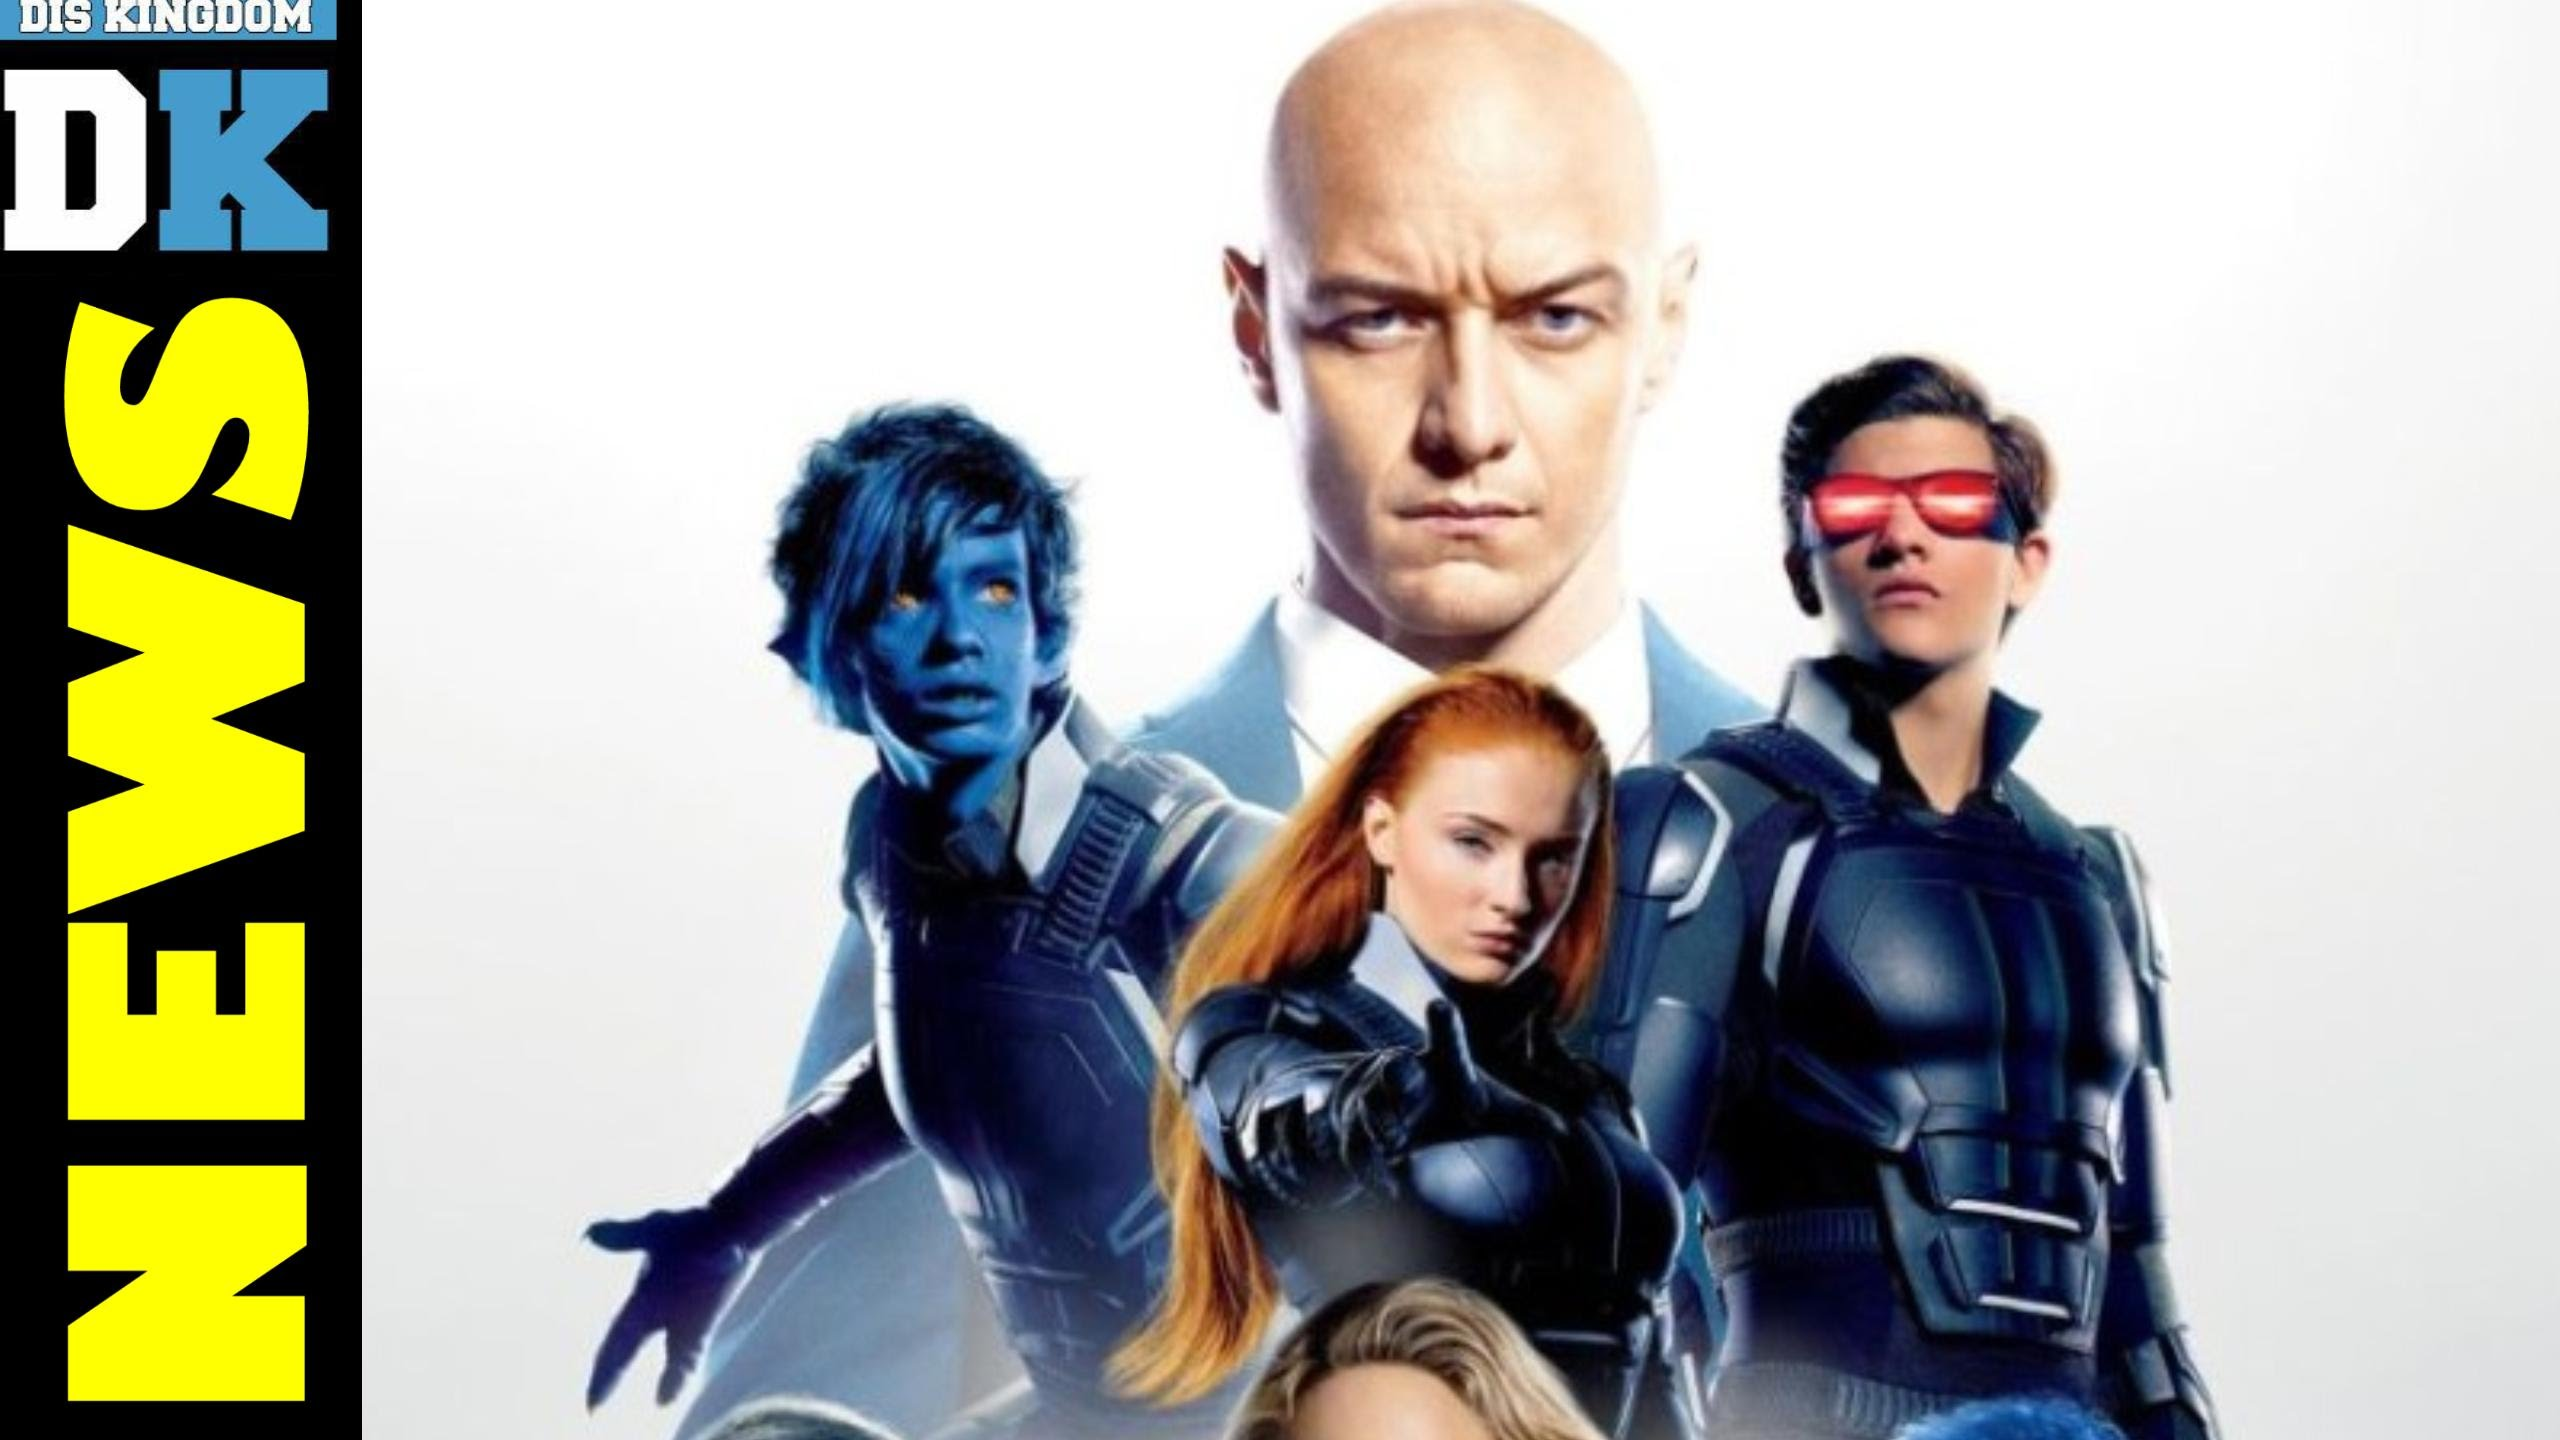 Defend & Destroy Posters Released For X-Men: Apocalypse